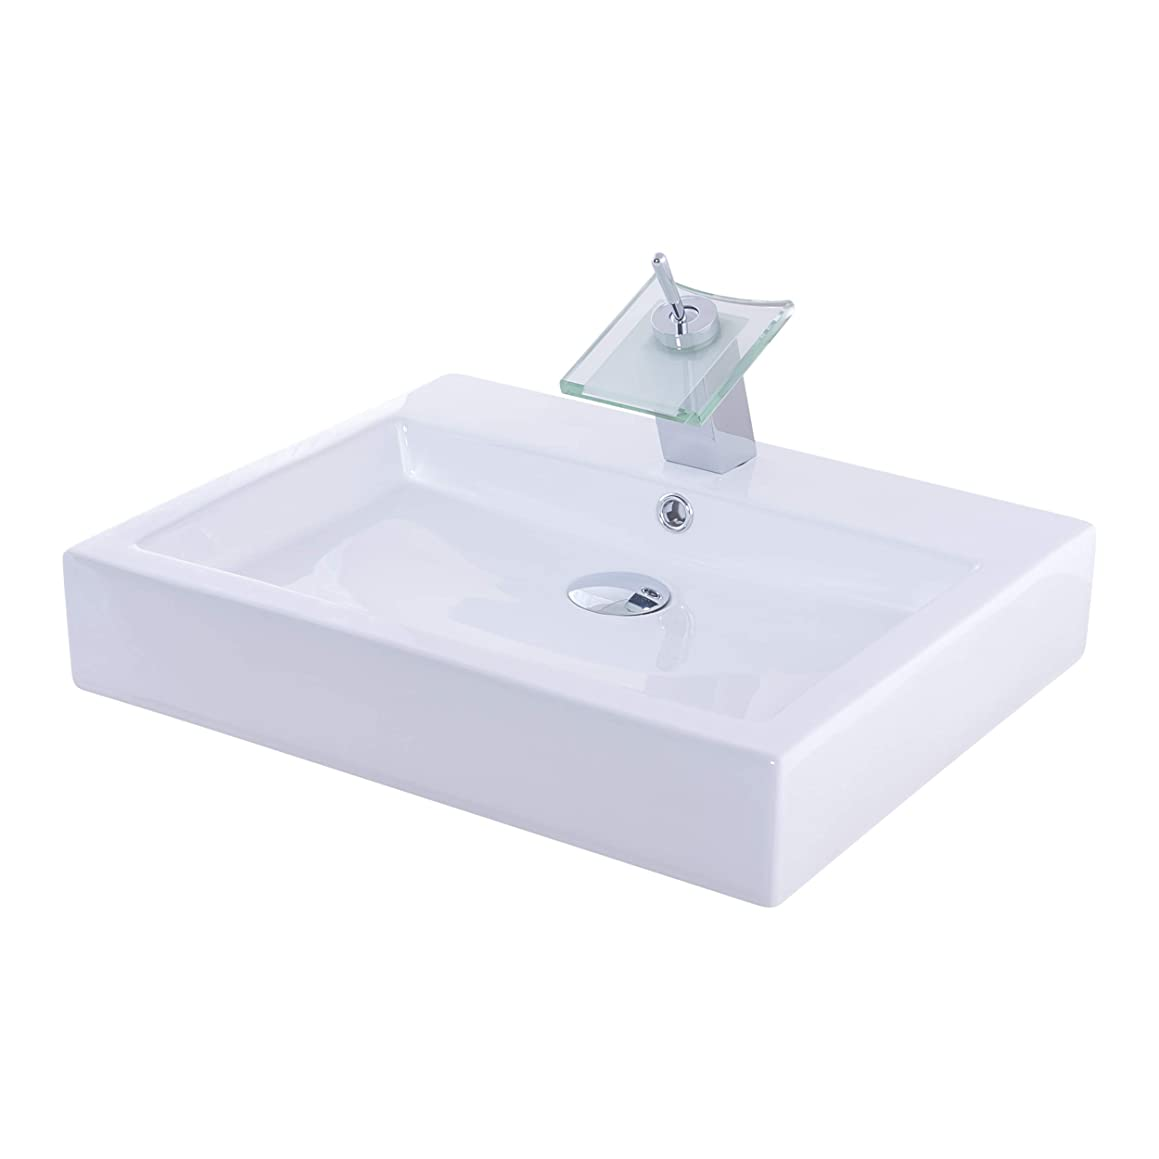 Novatto NSFC-01317010CH Porcelain Vessel Combo with Chrome, Drain and Sealer Sink/Faucet